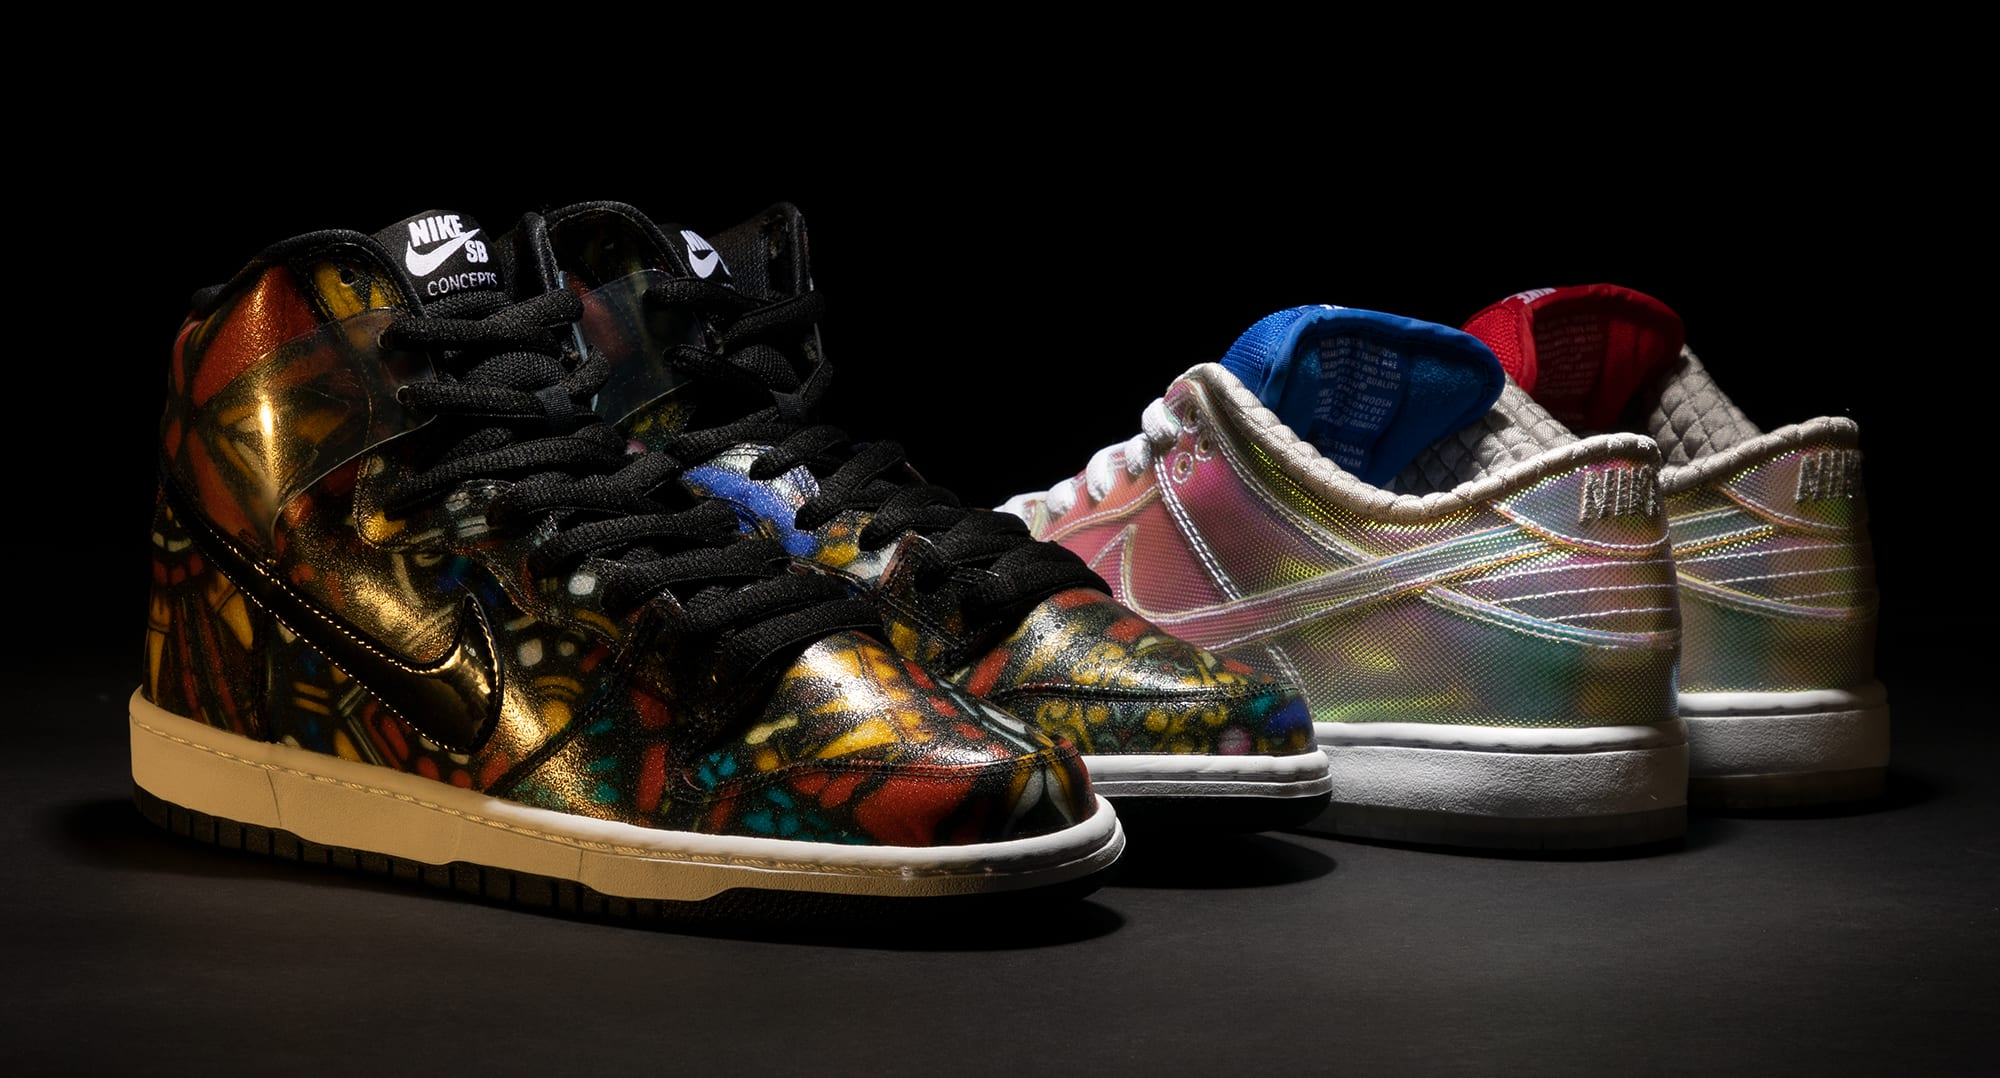 Concepts x Nike SB Dunk Low 'Holy Grail' SB Dunk High 'Stained Glass'